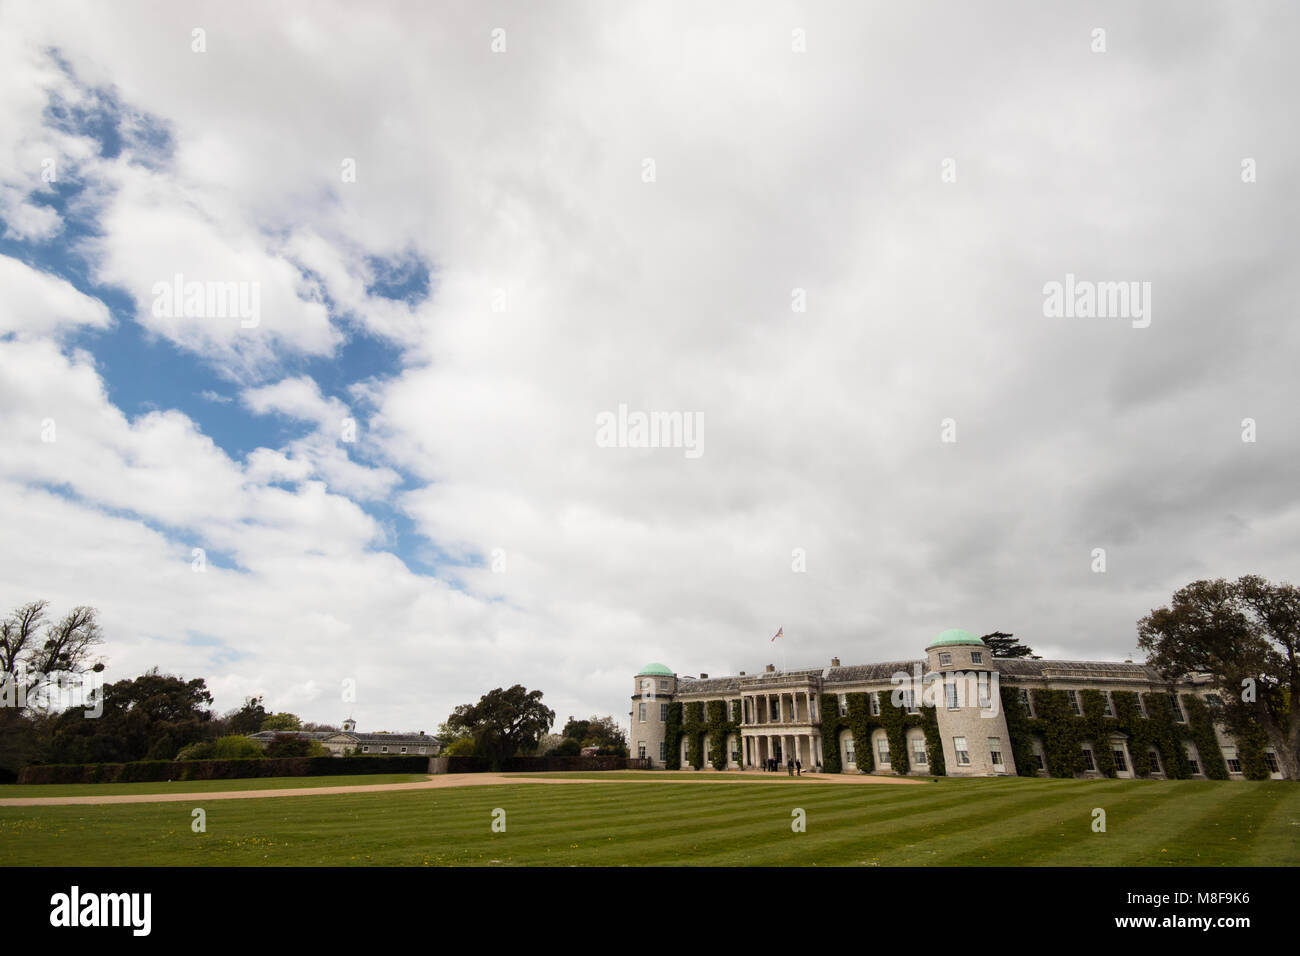 Airport car park uk stock photos airport car park uk stock images goodwood house on the goodwood estate on a spring day near chichester west sussex kristyandbryce Images